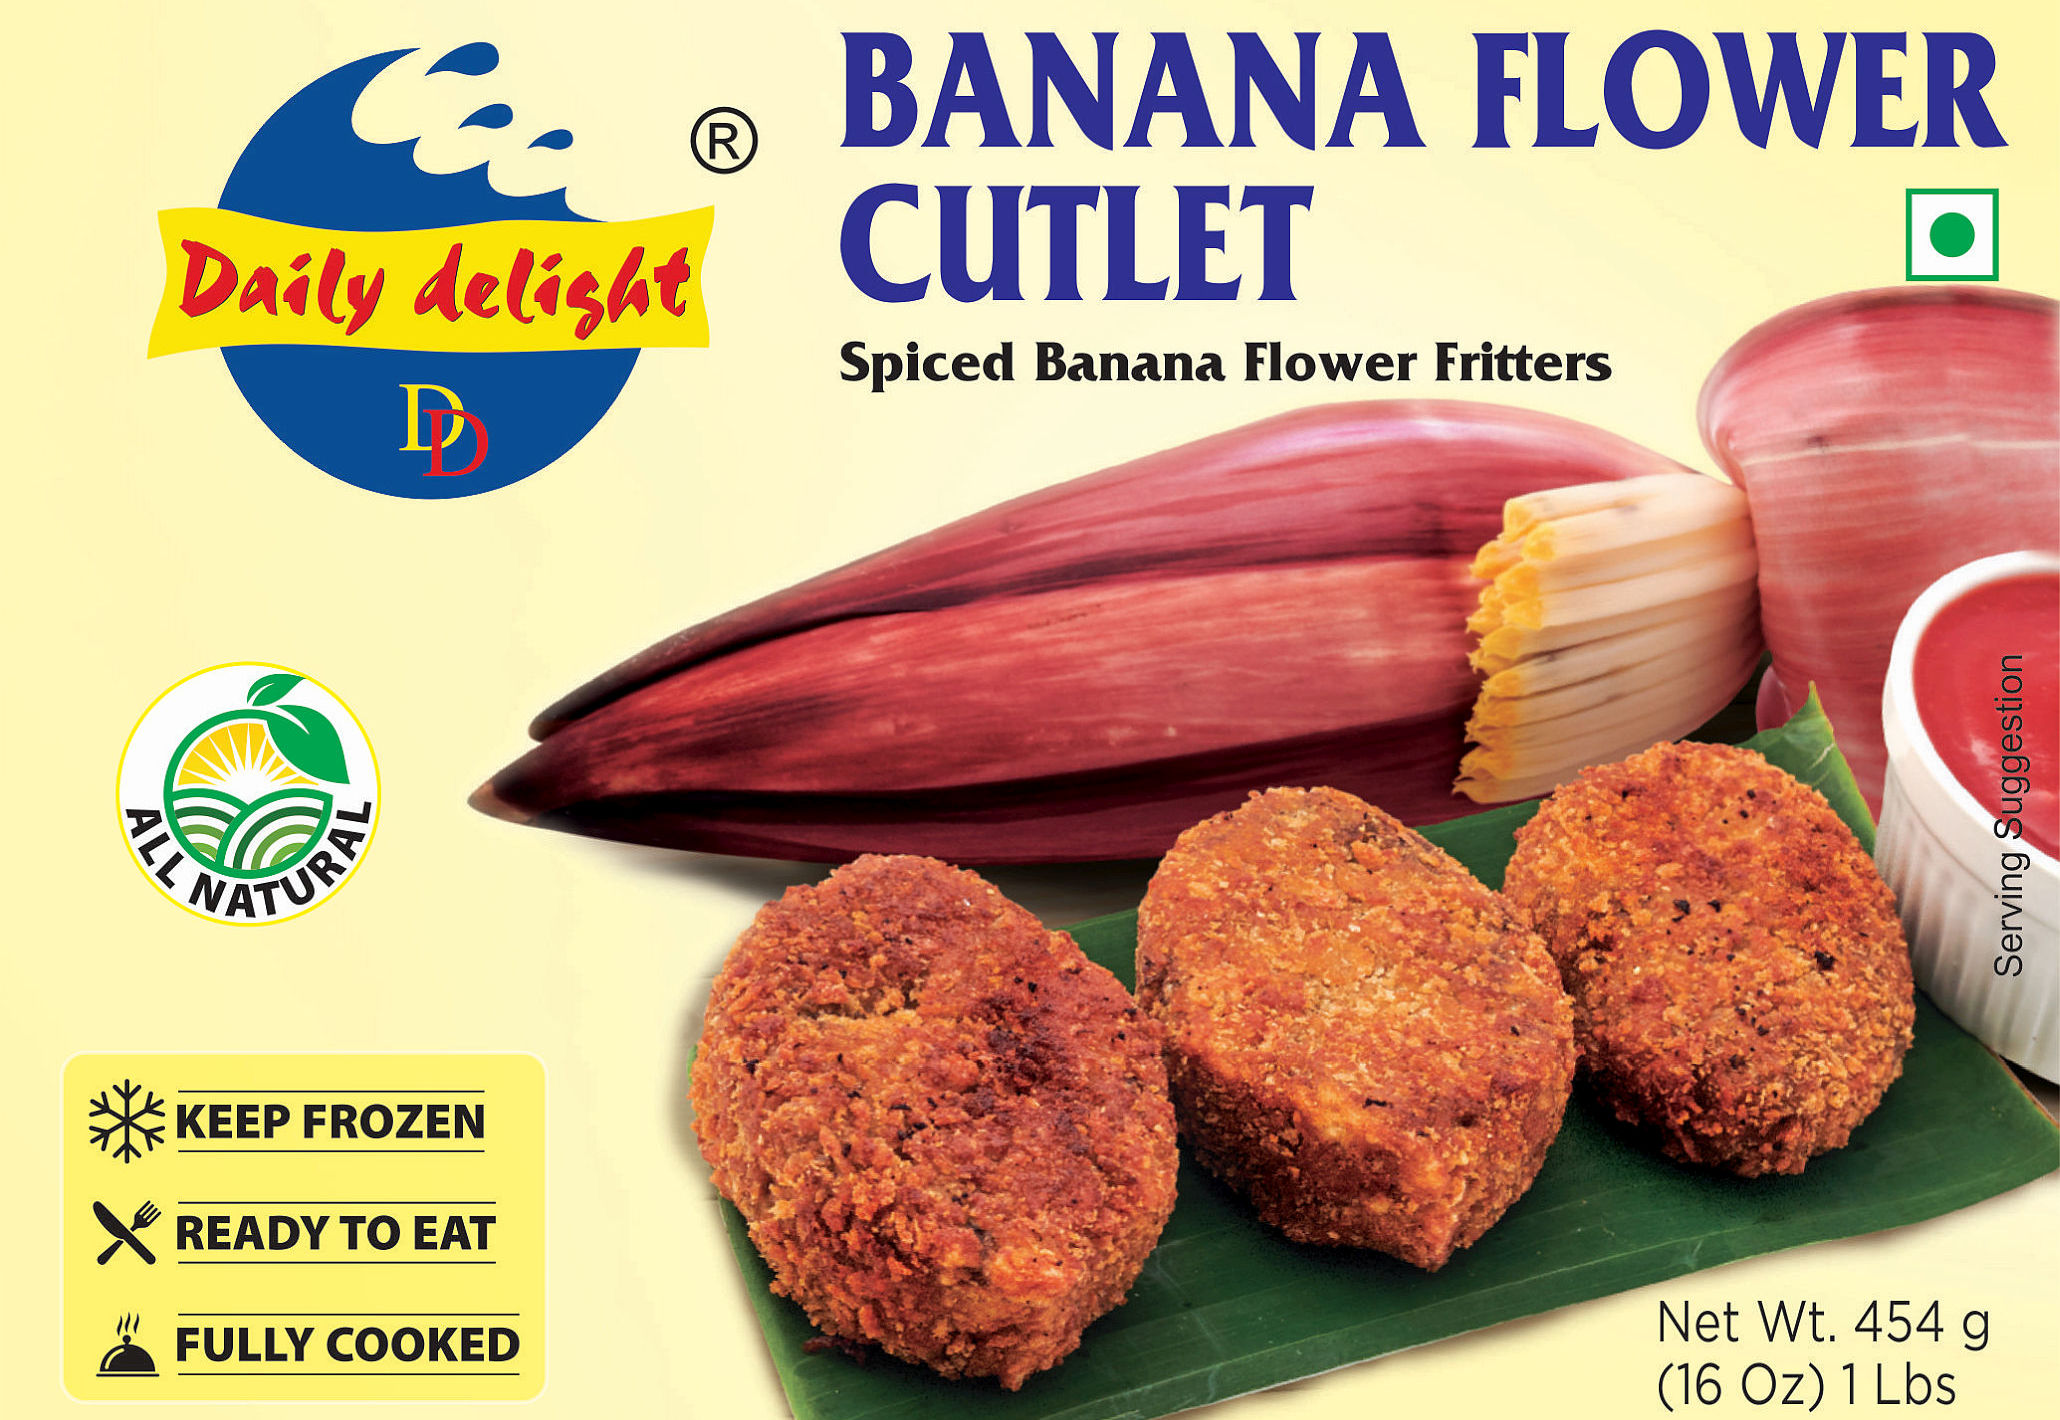 Daily Delight Banana Flower Cutlet